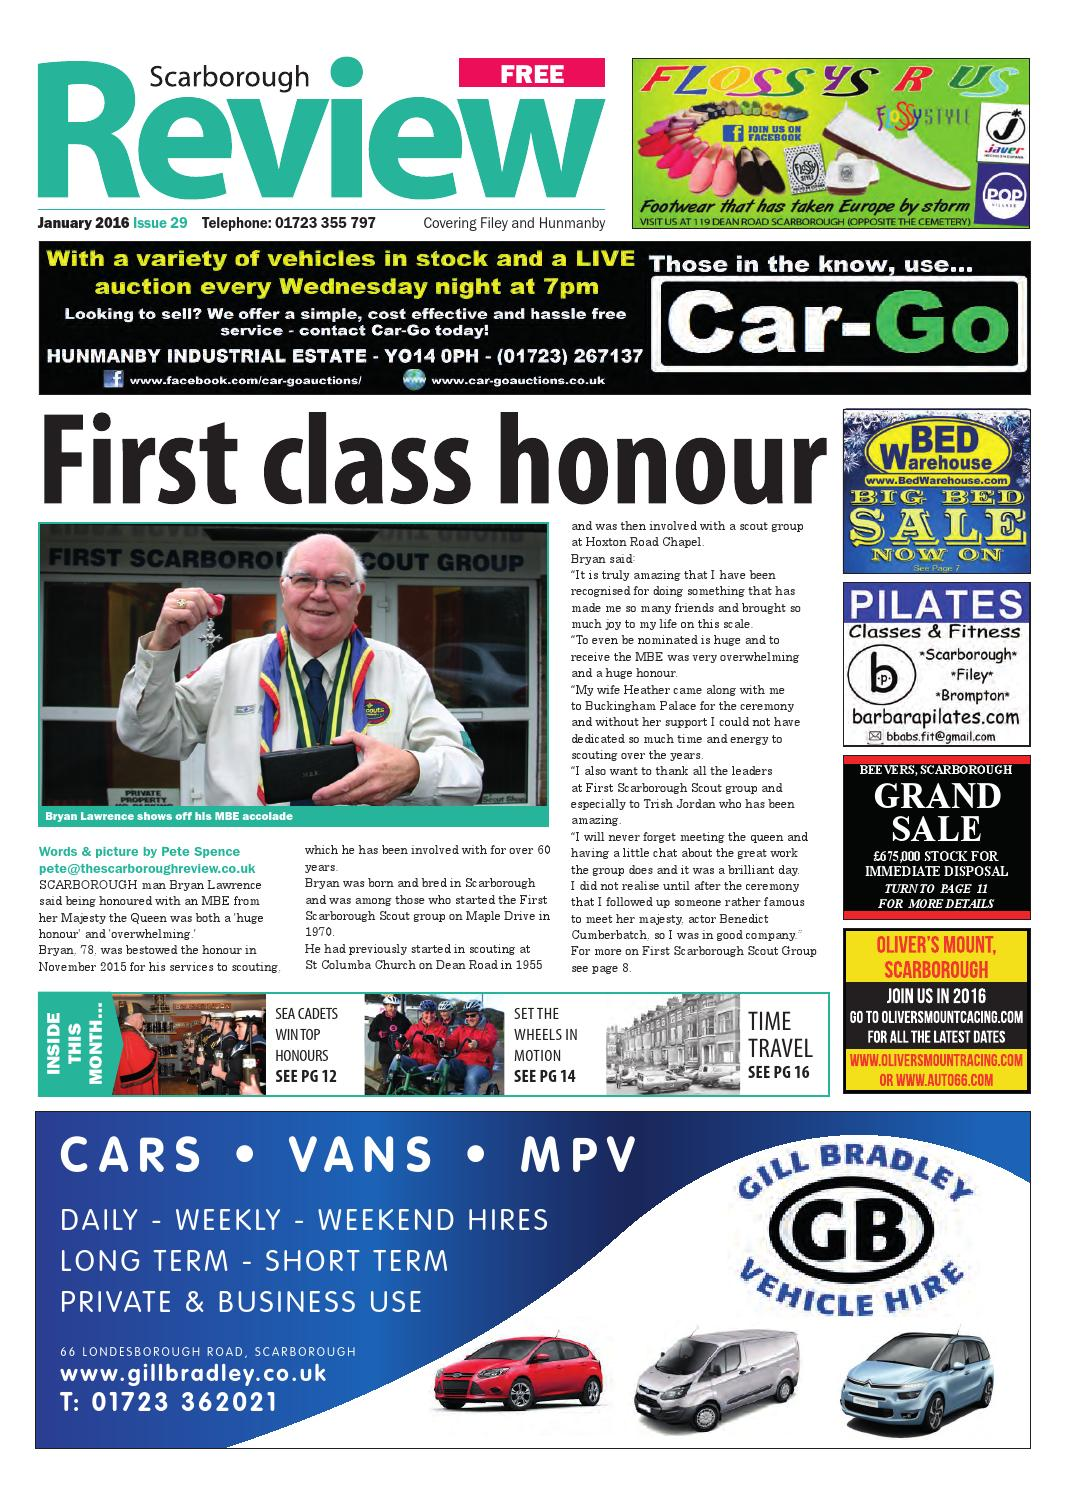 Scarborough Review Edition 29